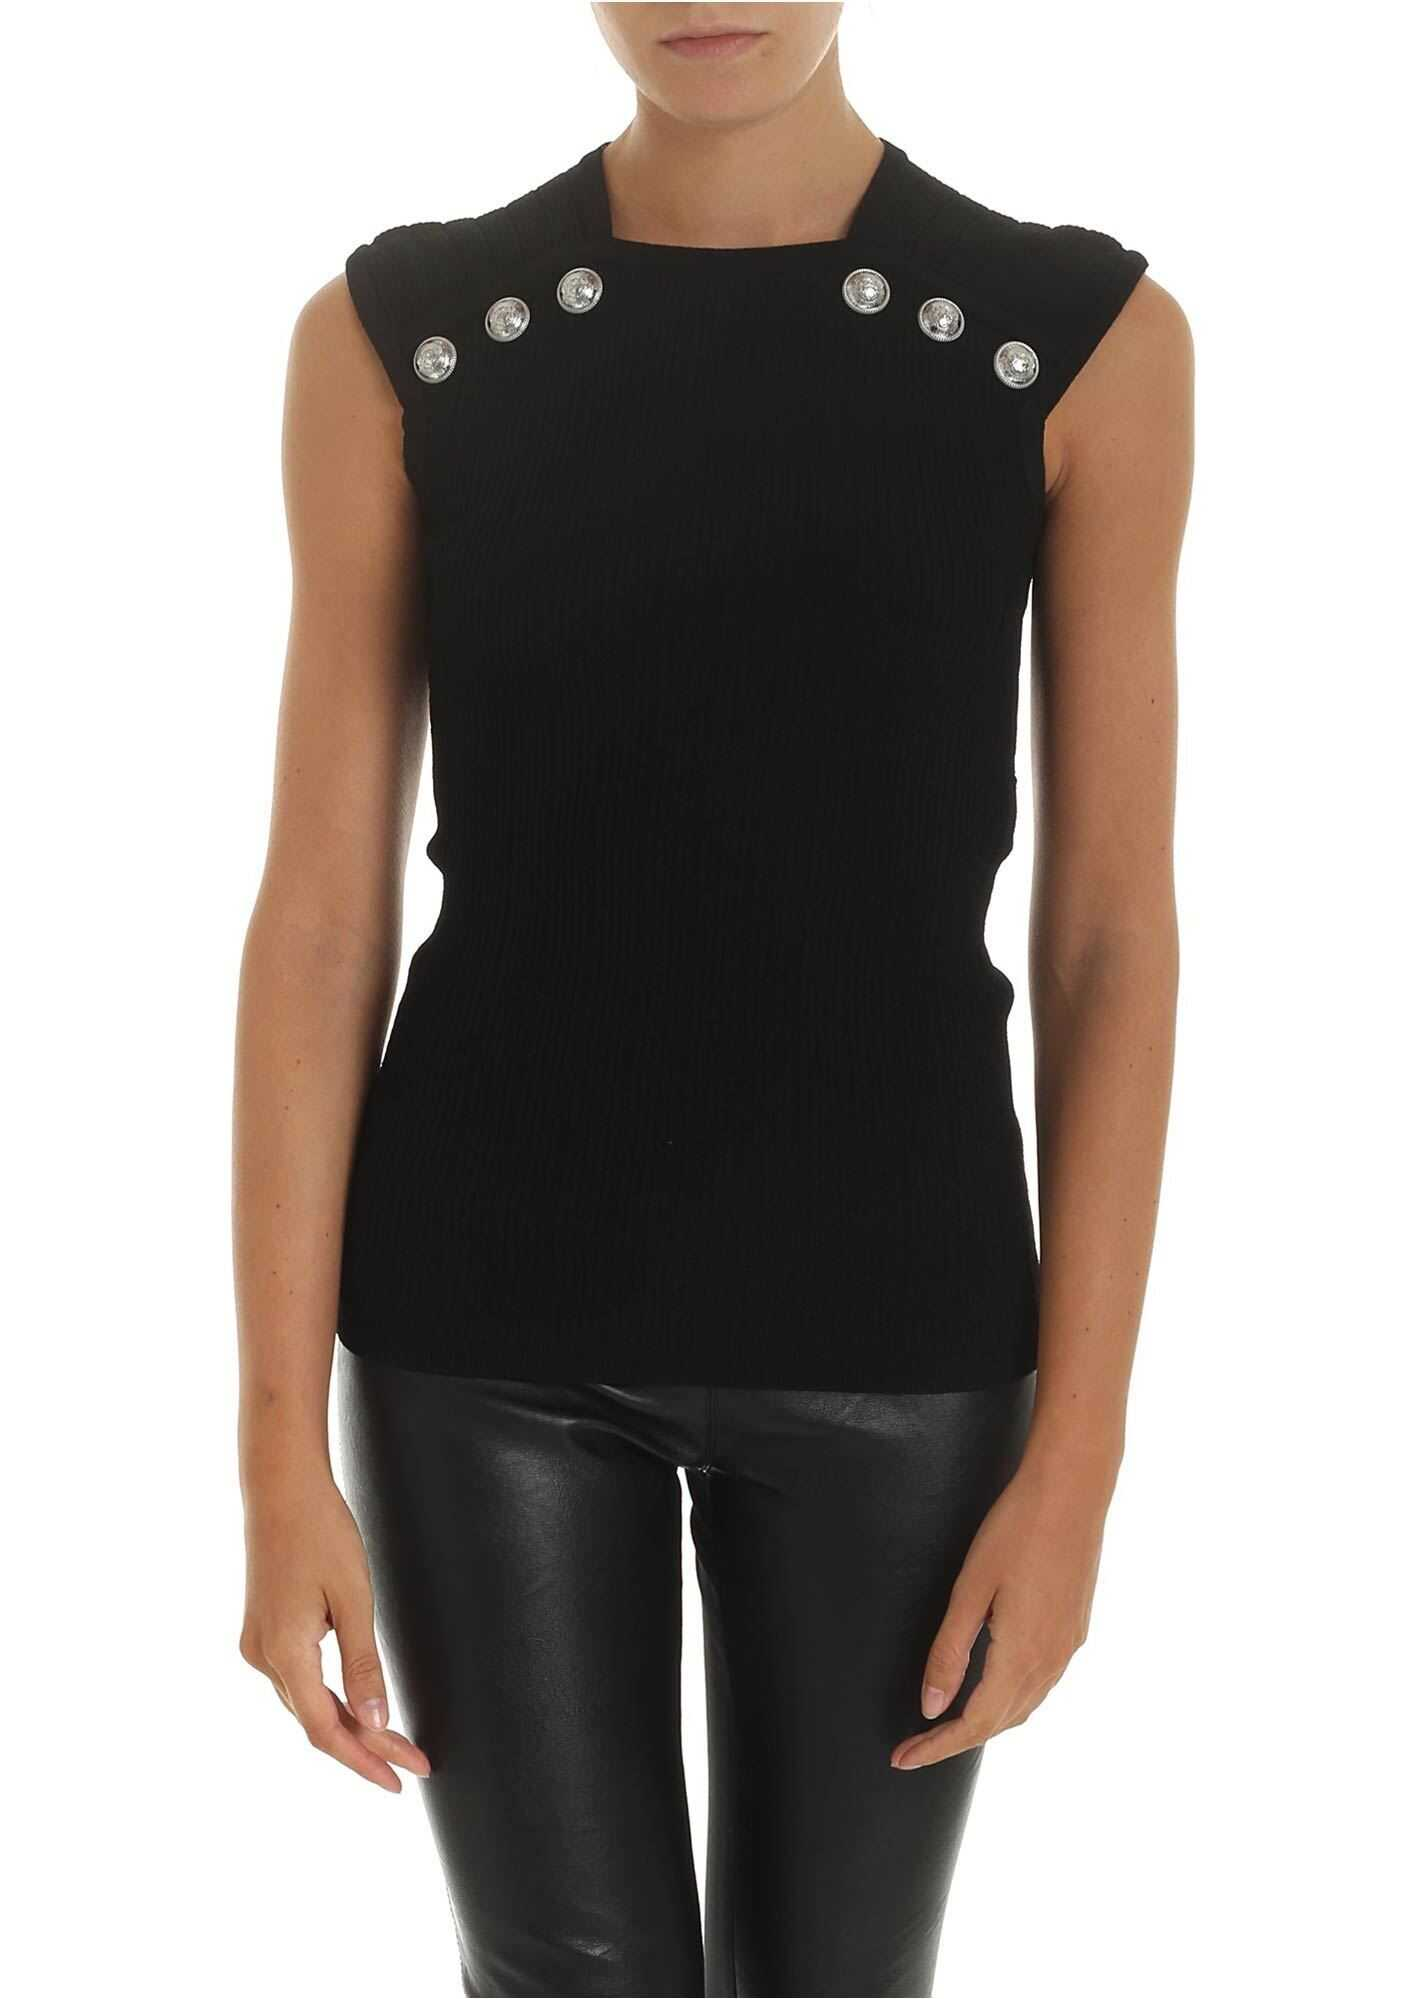 Black Top With Silver Metal Buttons thumbnail